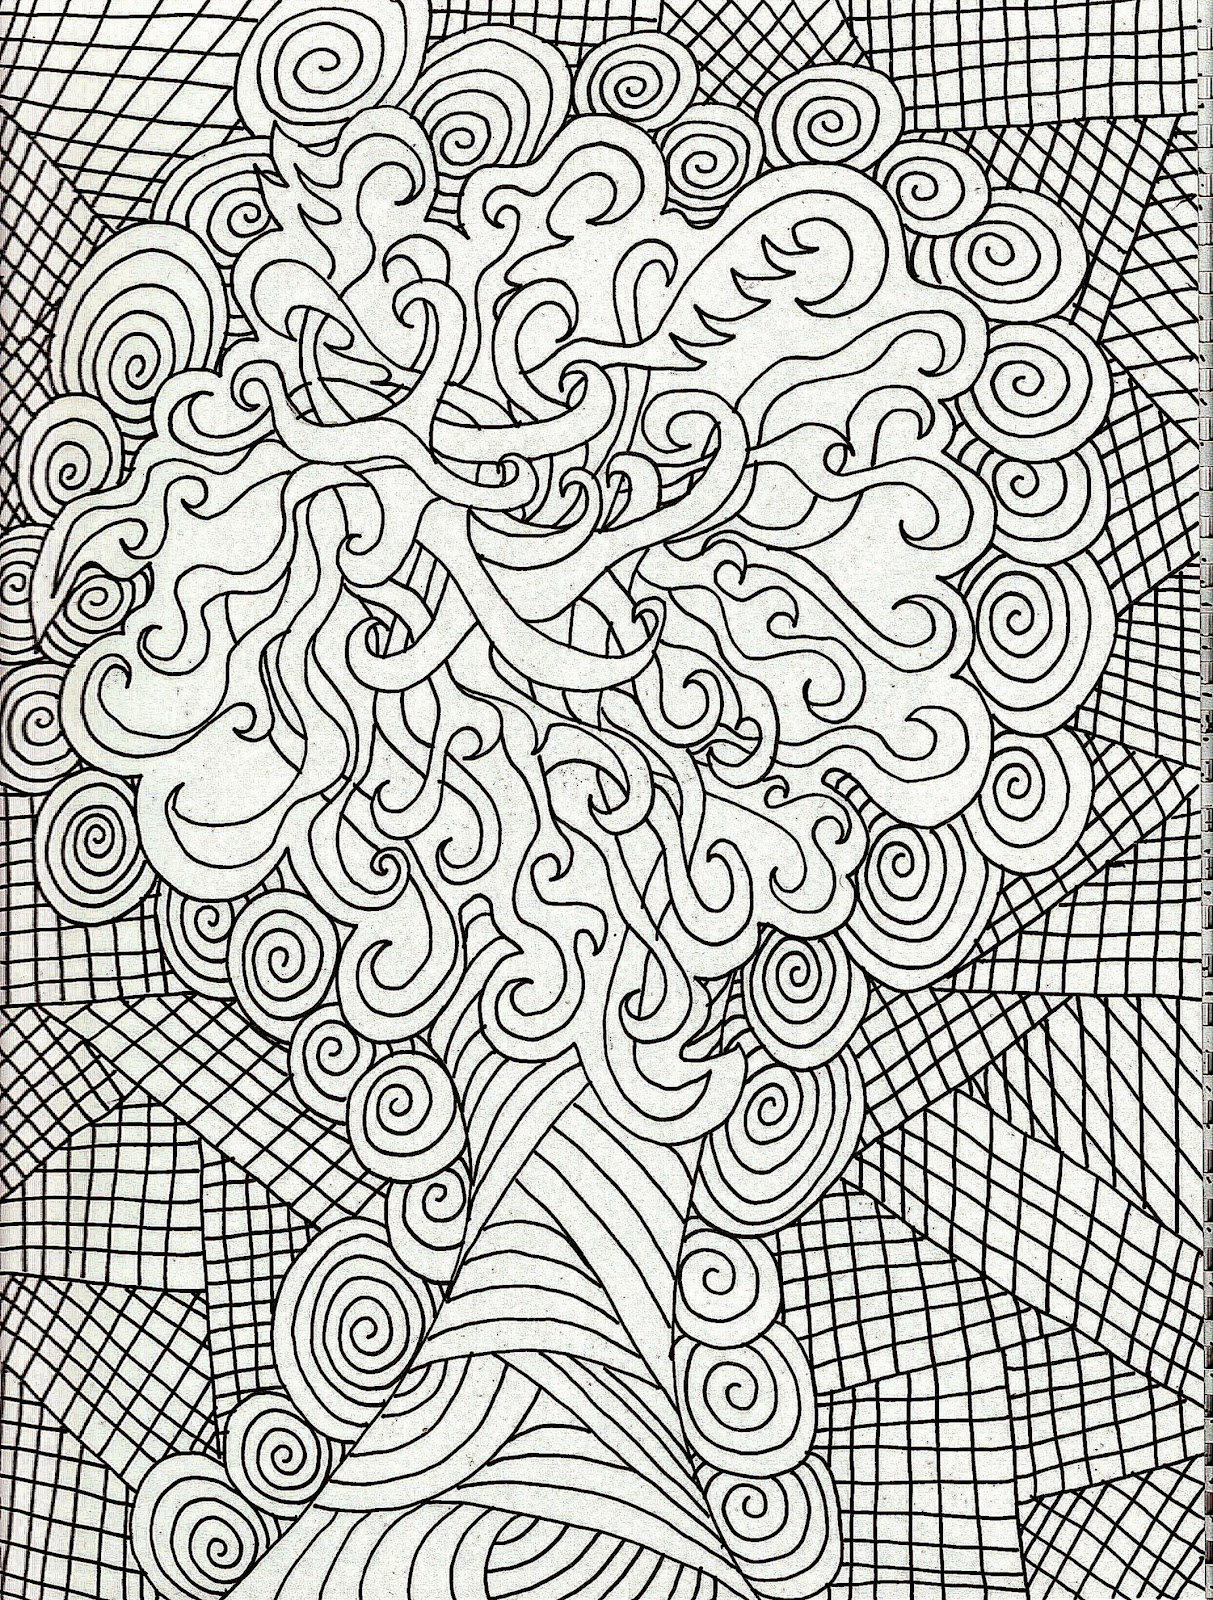 Coloring pictures for adults free coloring pictures for Adult coloring page free